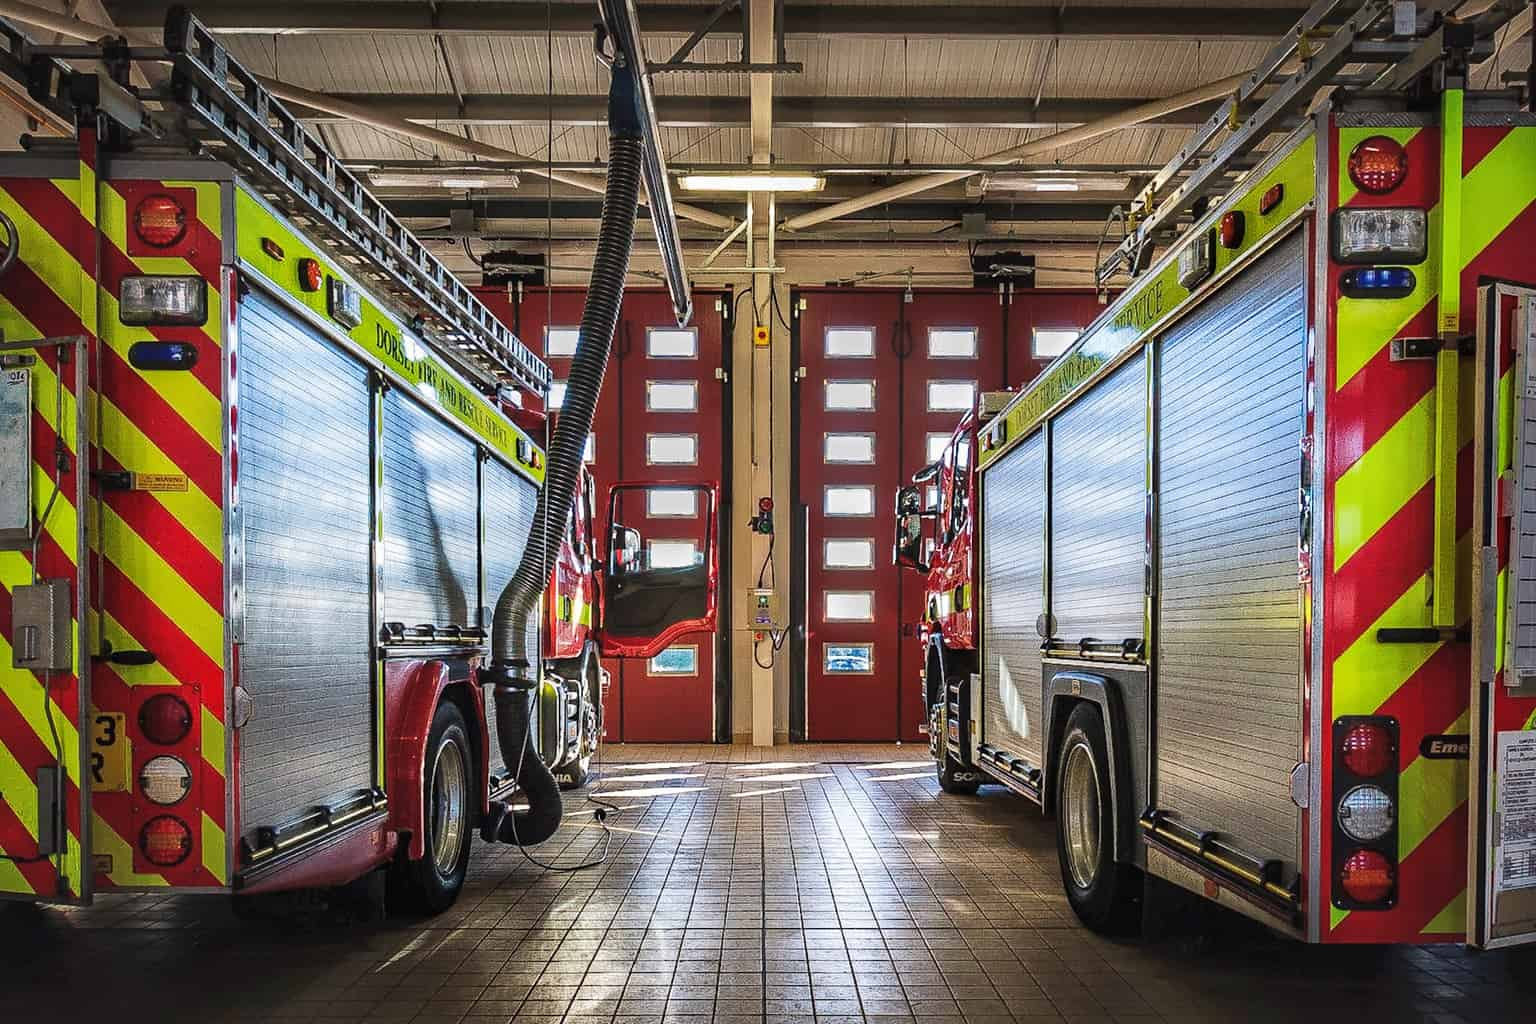 Appliance Bay at Dorchester Fire Station